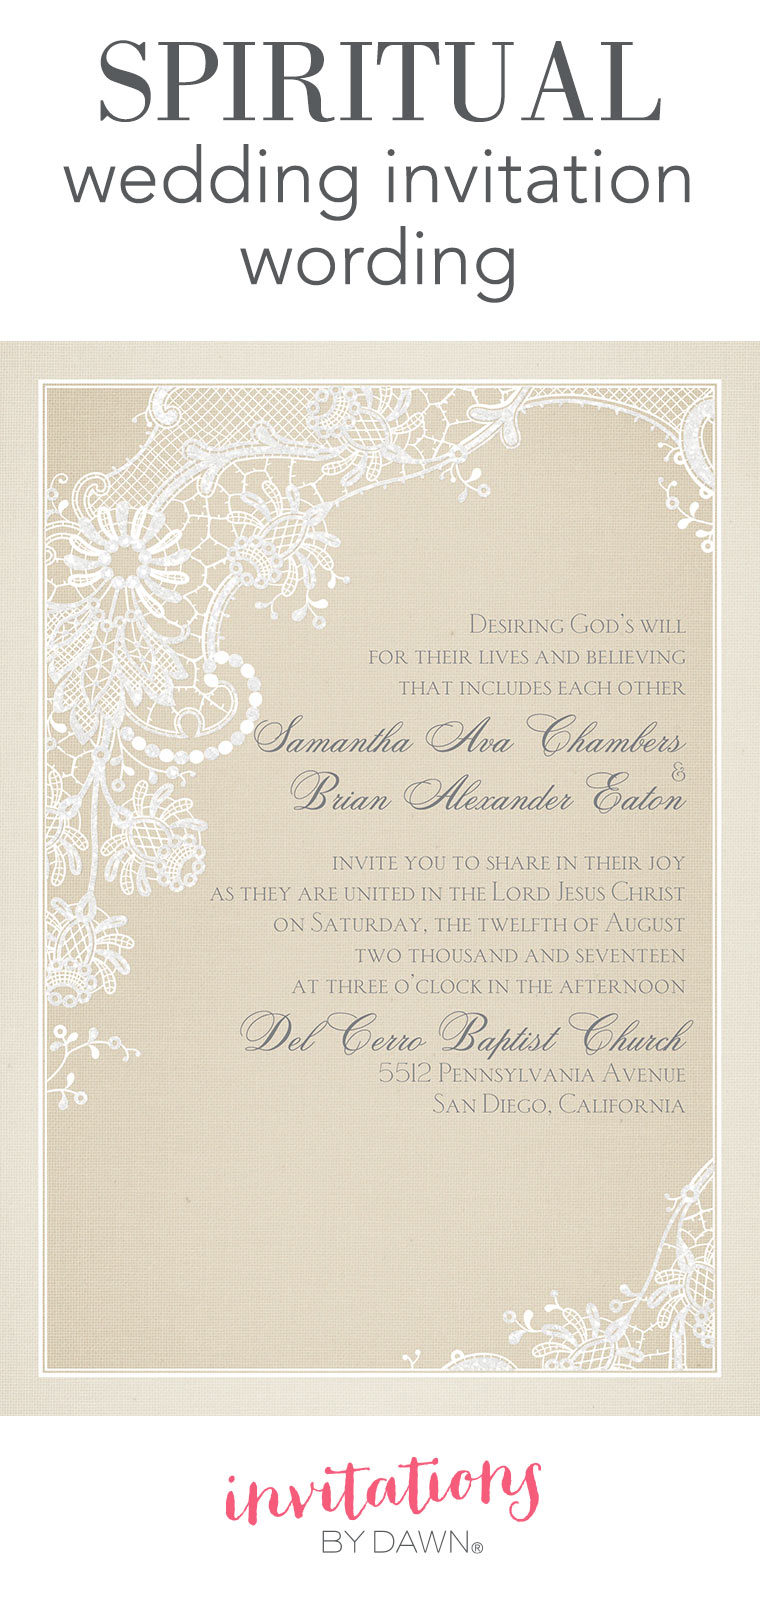 Wording For Wedding Invitations.Spiritual Wedding Invitation Wording Invitations By Dawn